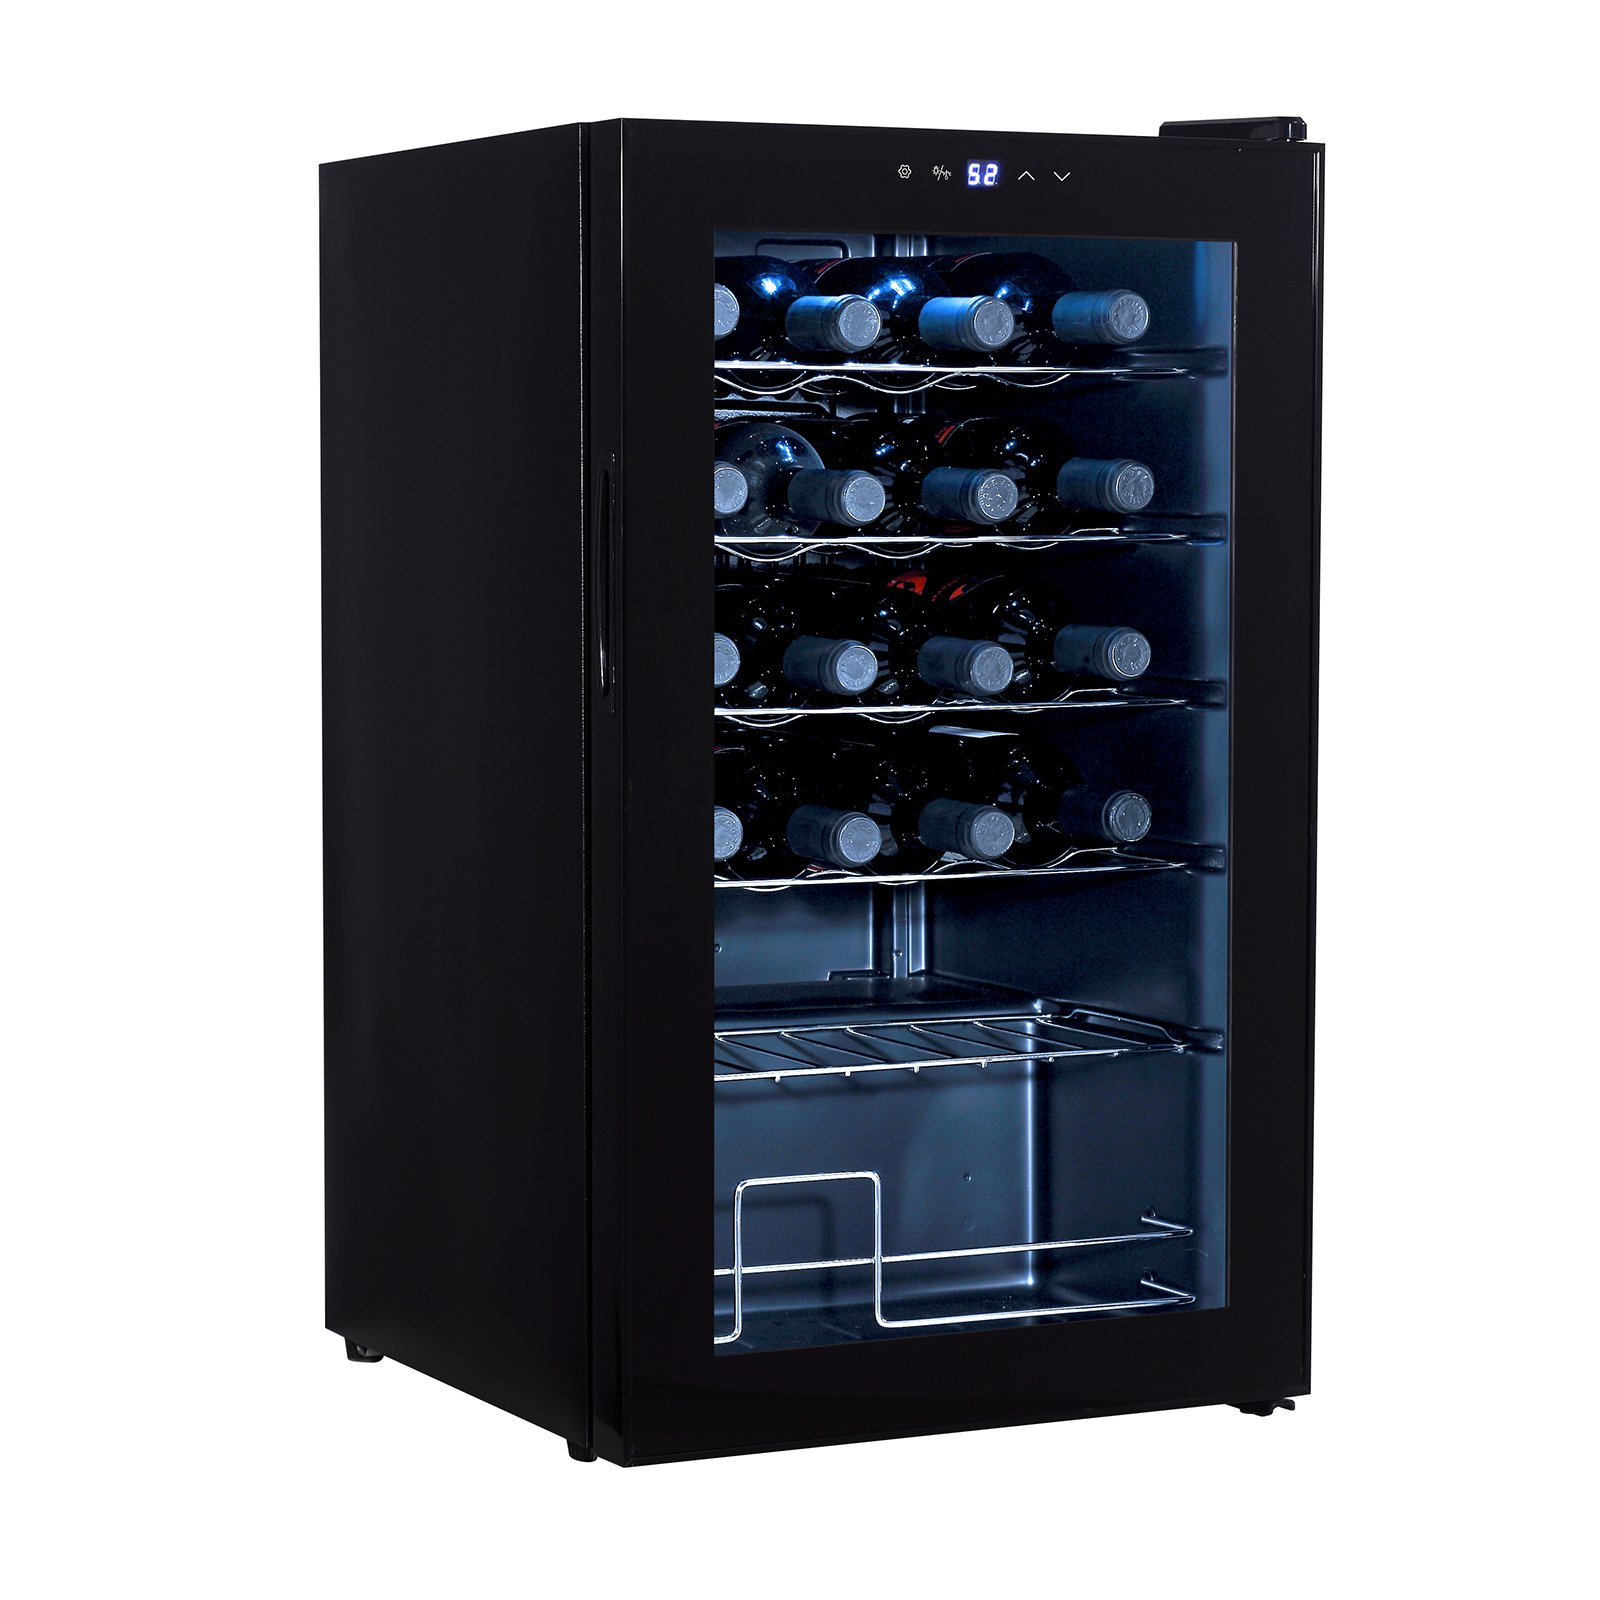 Mecor 24-Bottle Compressor Wine Cooler Freestanding Wine Chiller Refrigerator Cabinet,Black